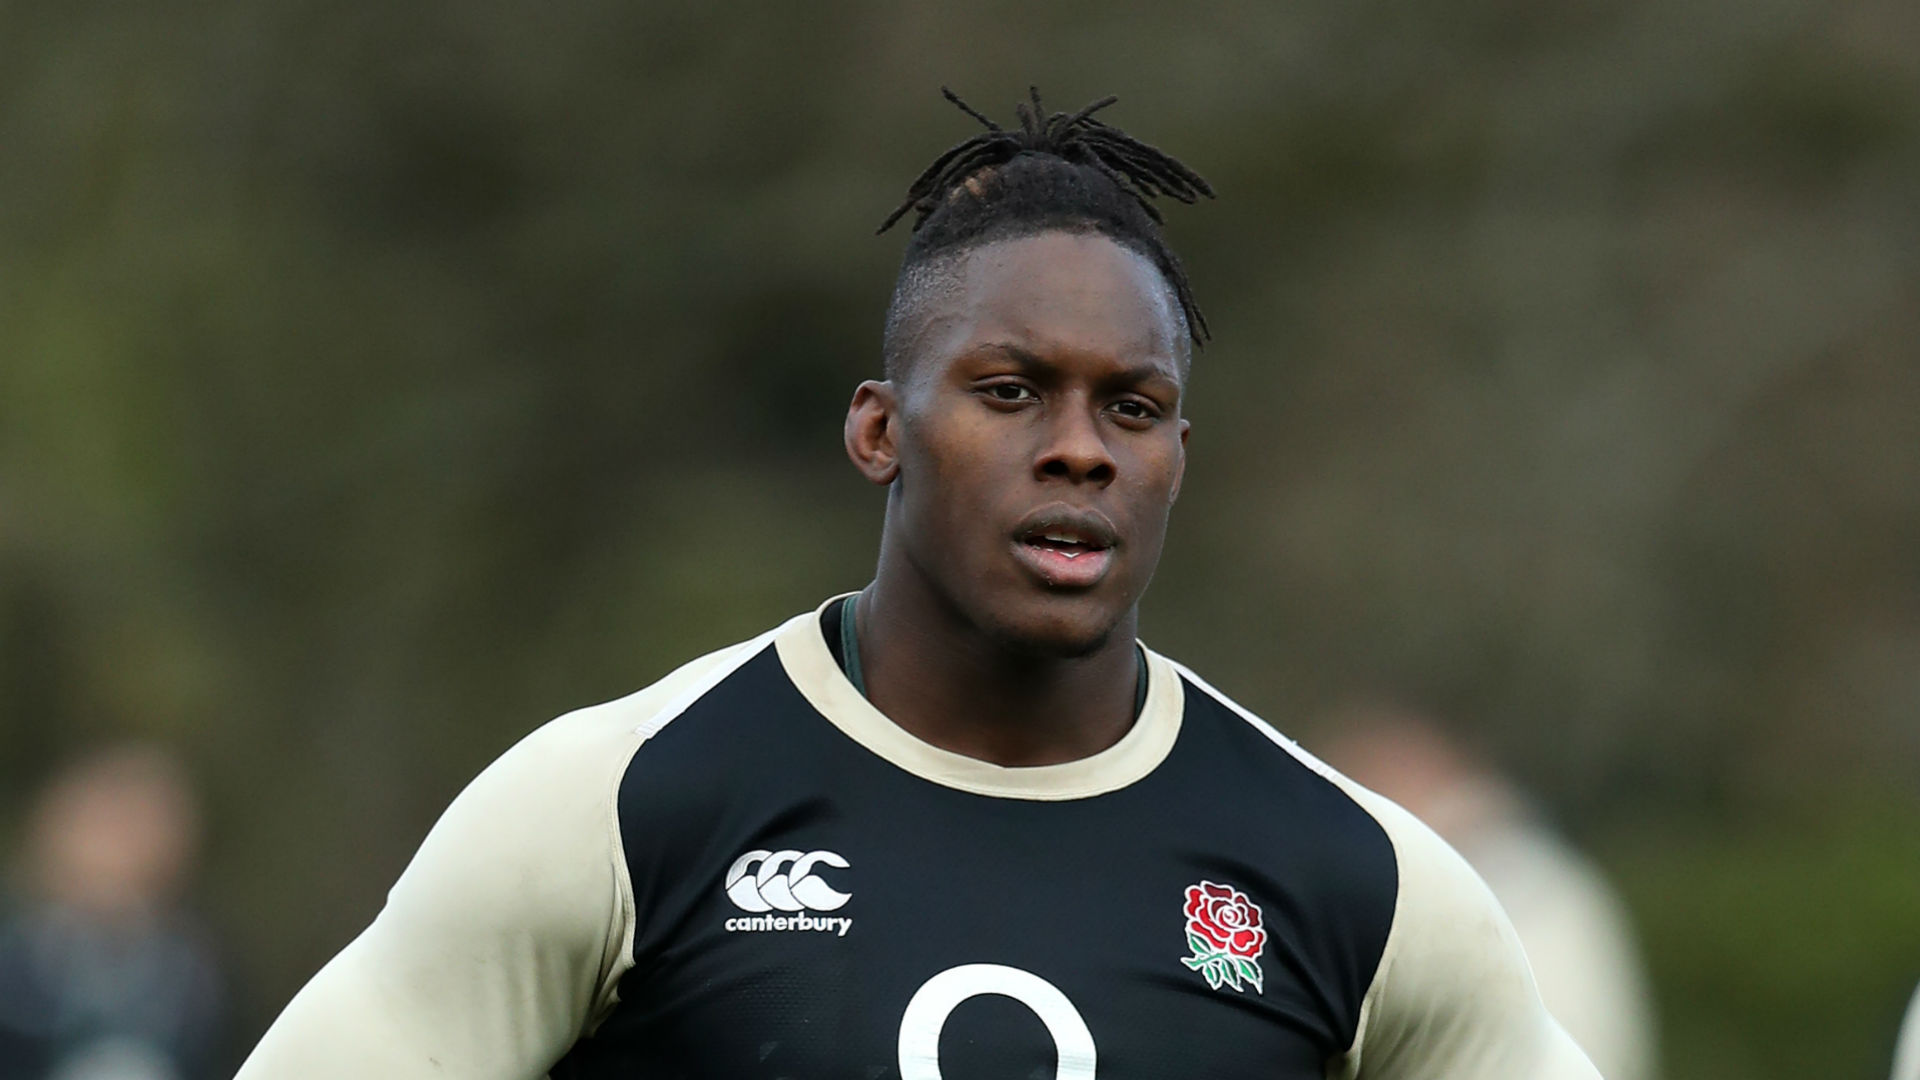 Six Nations: England lock Maro Itoje ruled out of Scotland game